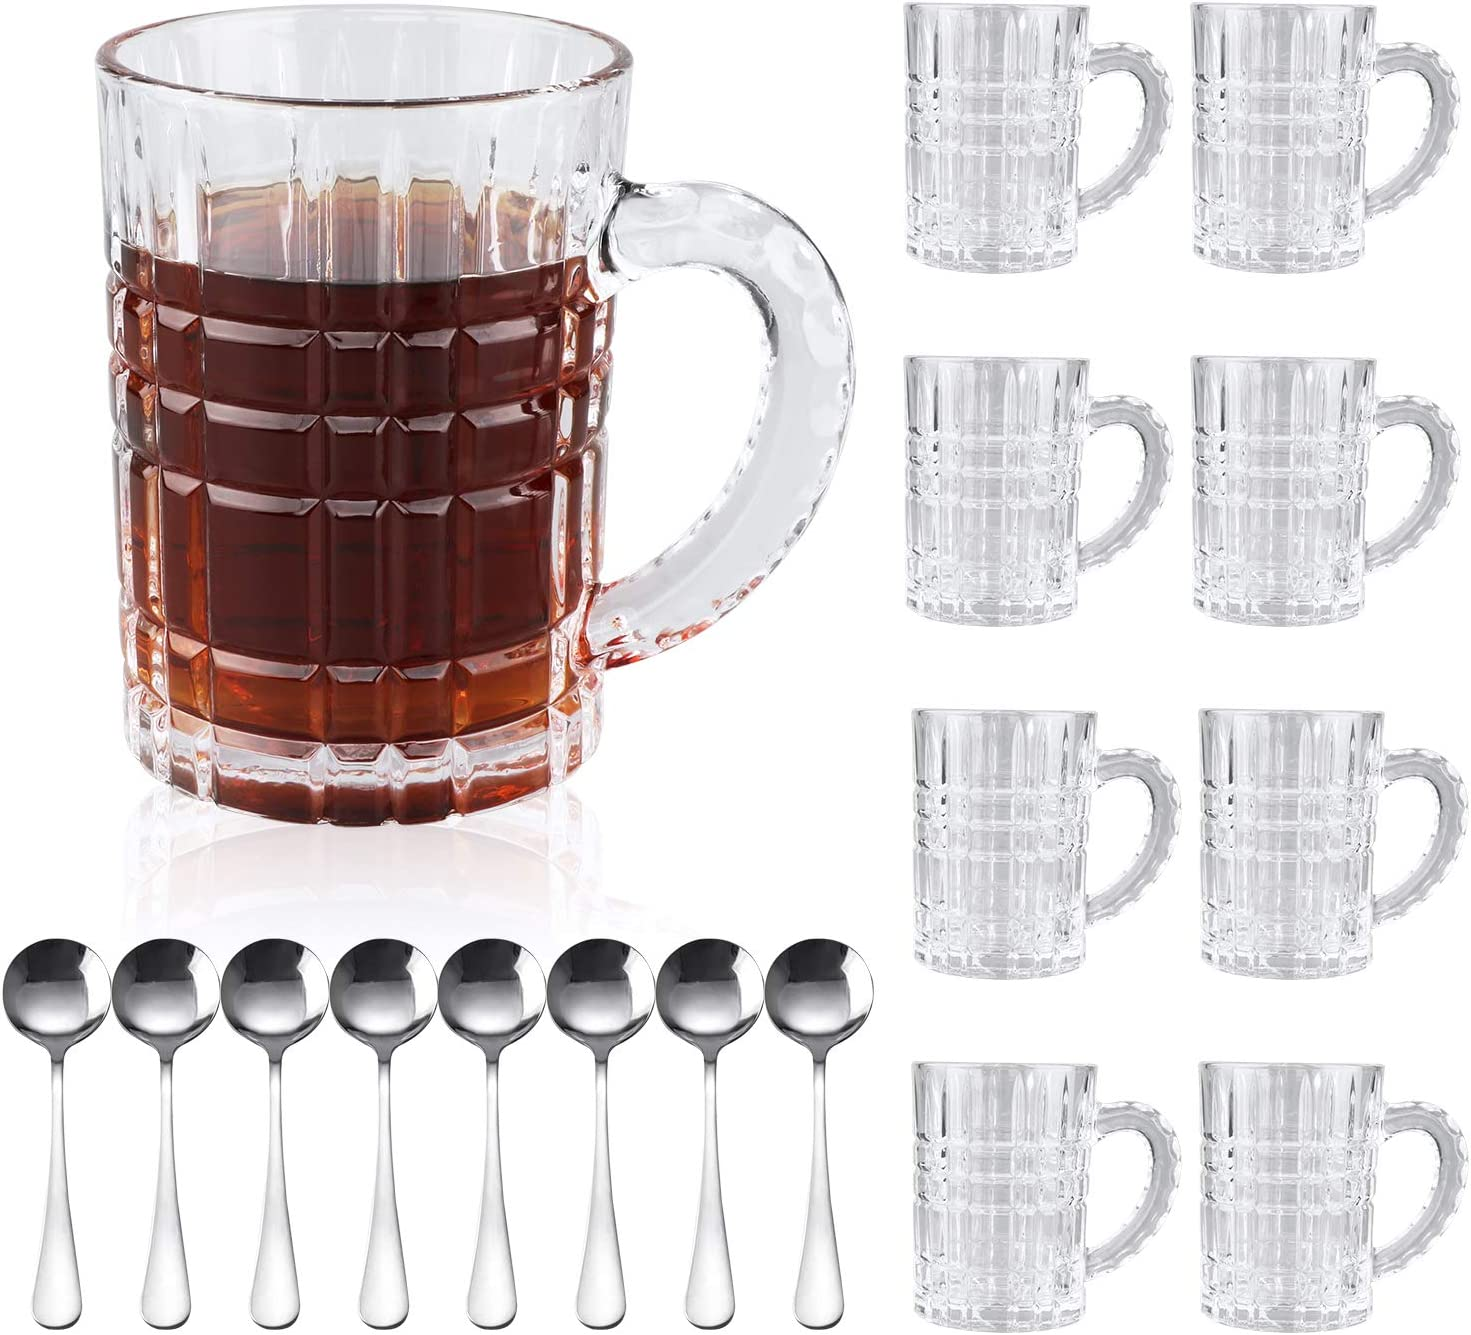 Beer Mugs Set,Glass Mugs With Handle 15oz,Large Beer Glasses For Freezer,Beer Cups Drinking Glasses 450ml,Pub Drinking Mugs Stein Water Cups For Bar,Alcohol,Beverages Set of 8